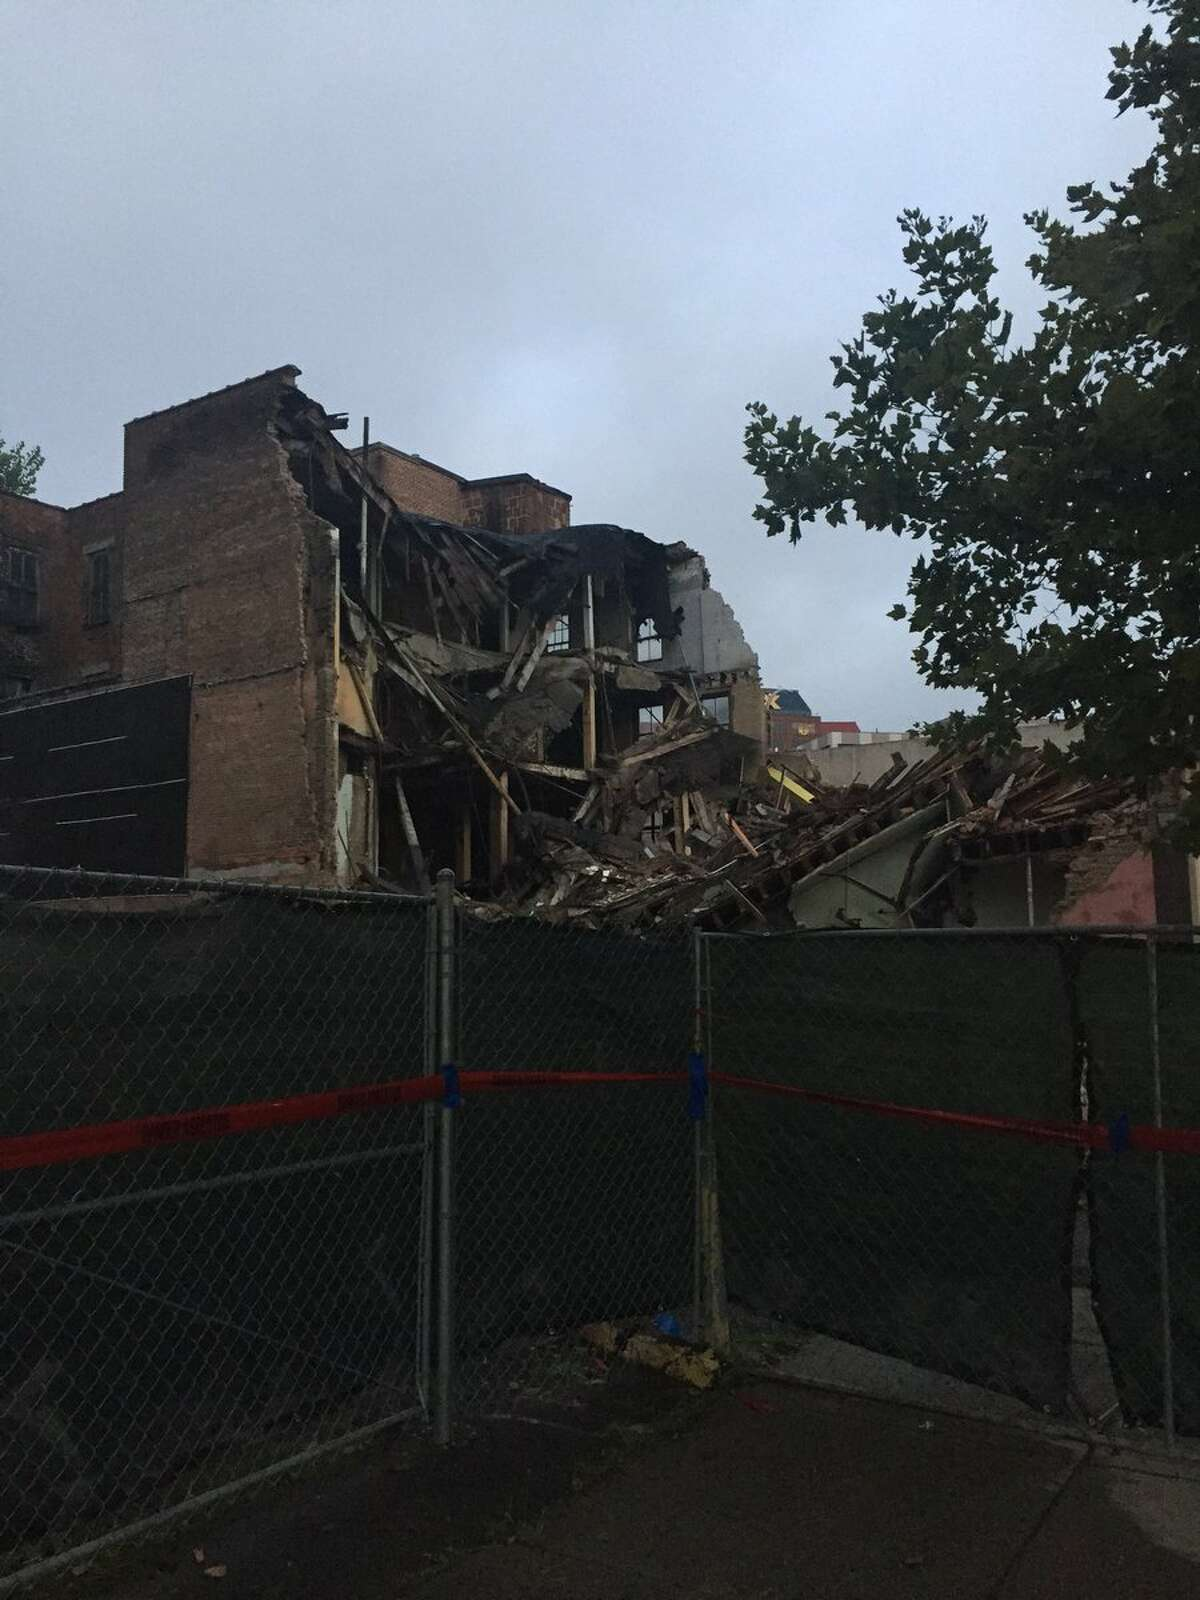 Demolition is partially completed early Friday, Aug. 3, 2018, of 6 E-Comm in Albany, where an emergency demolition was ordered on Thursday. (Amanda Fries/Times Union)